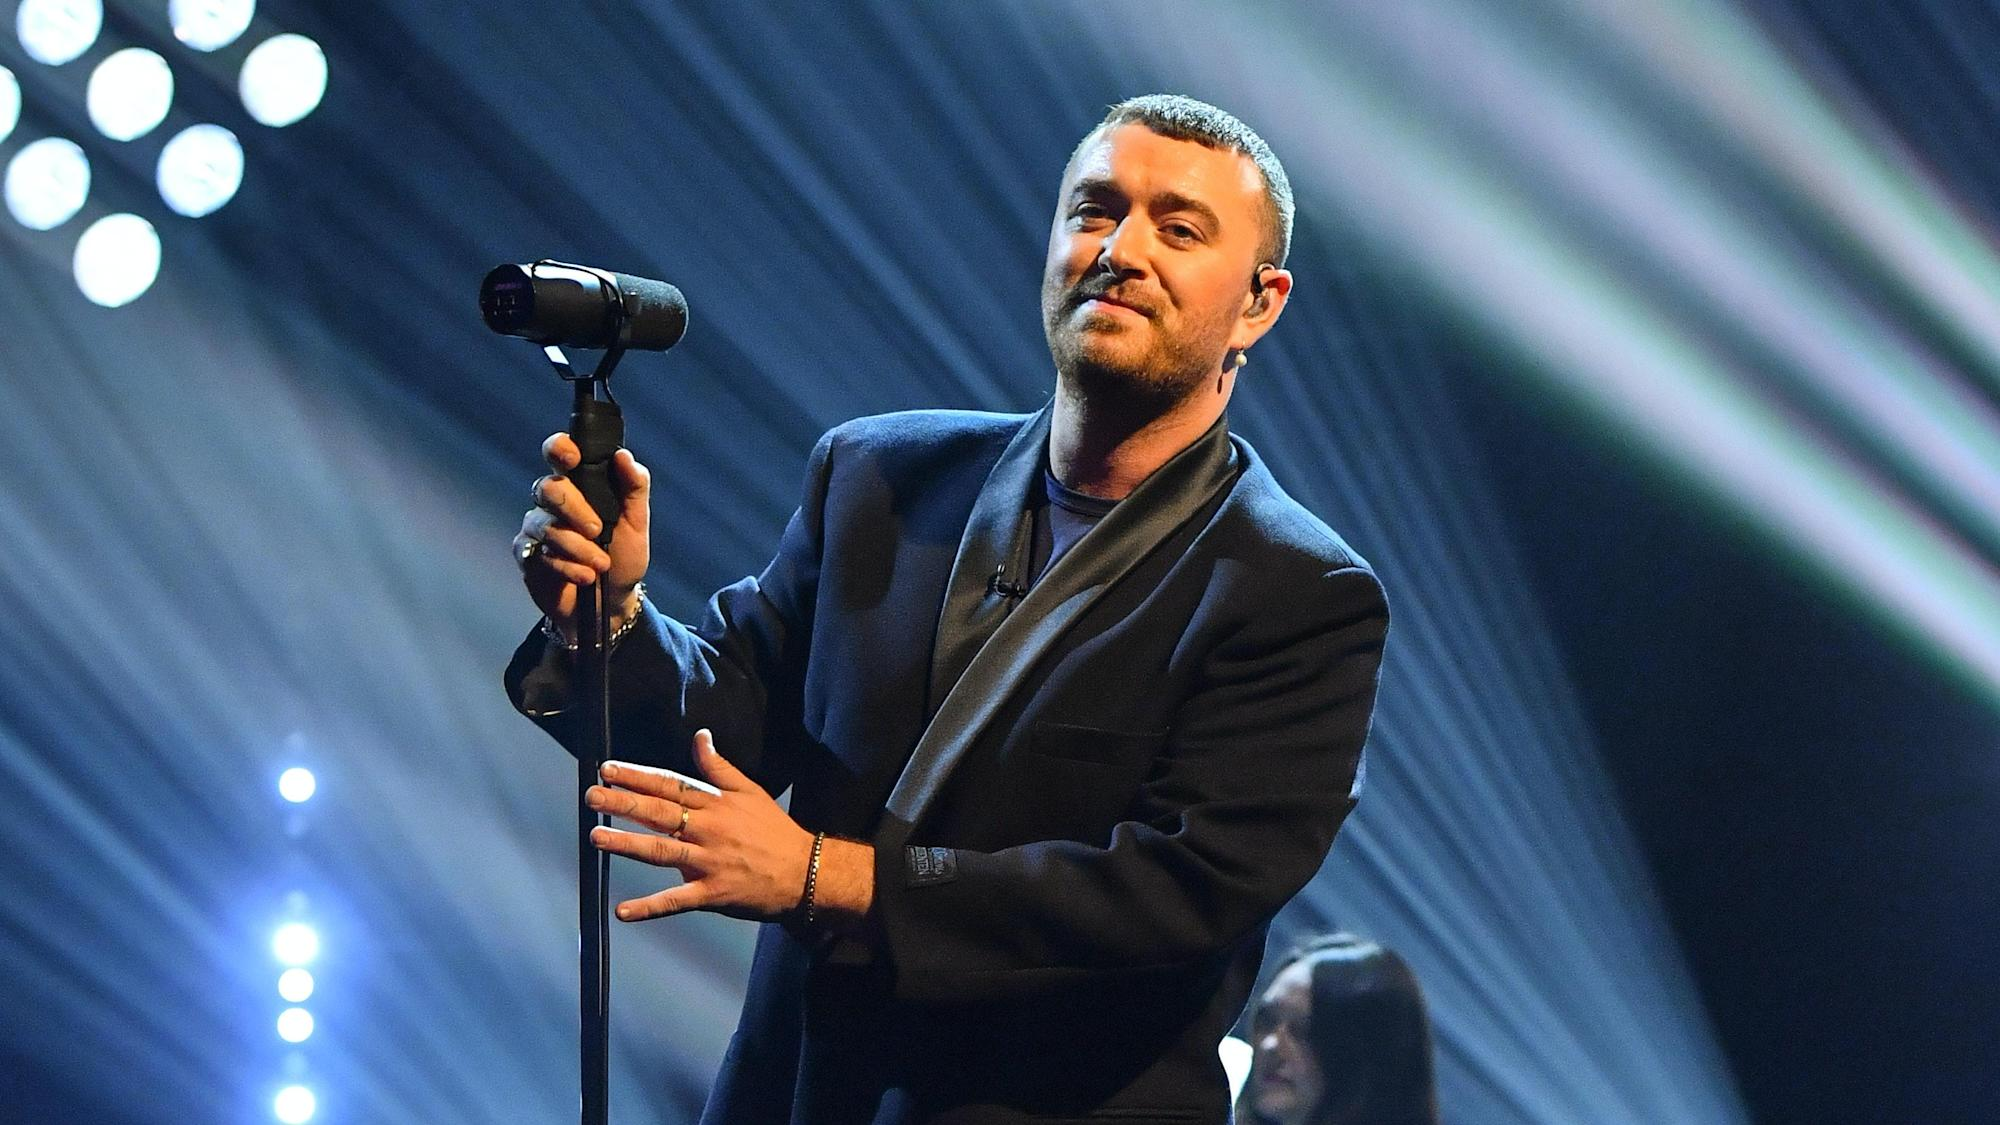 Sam Smith: When I changed my pronouns, things got complicated